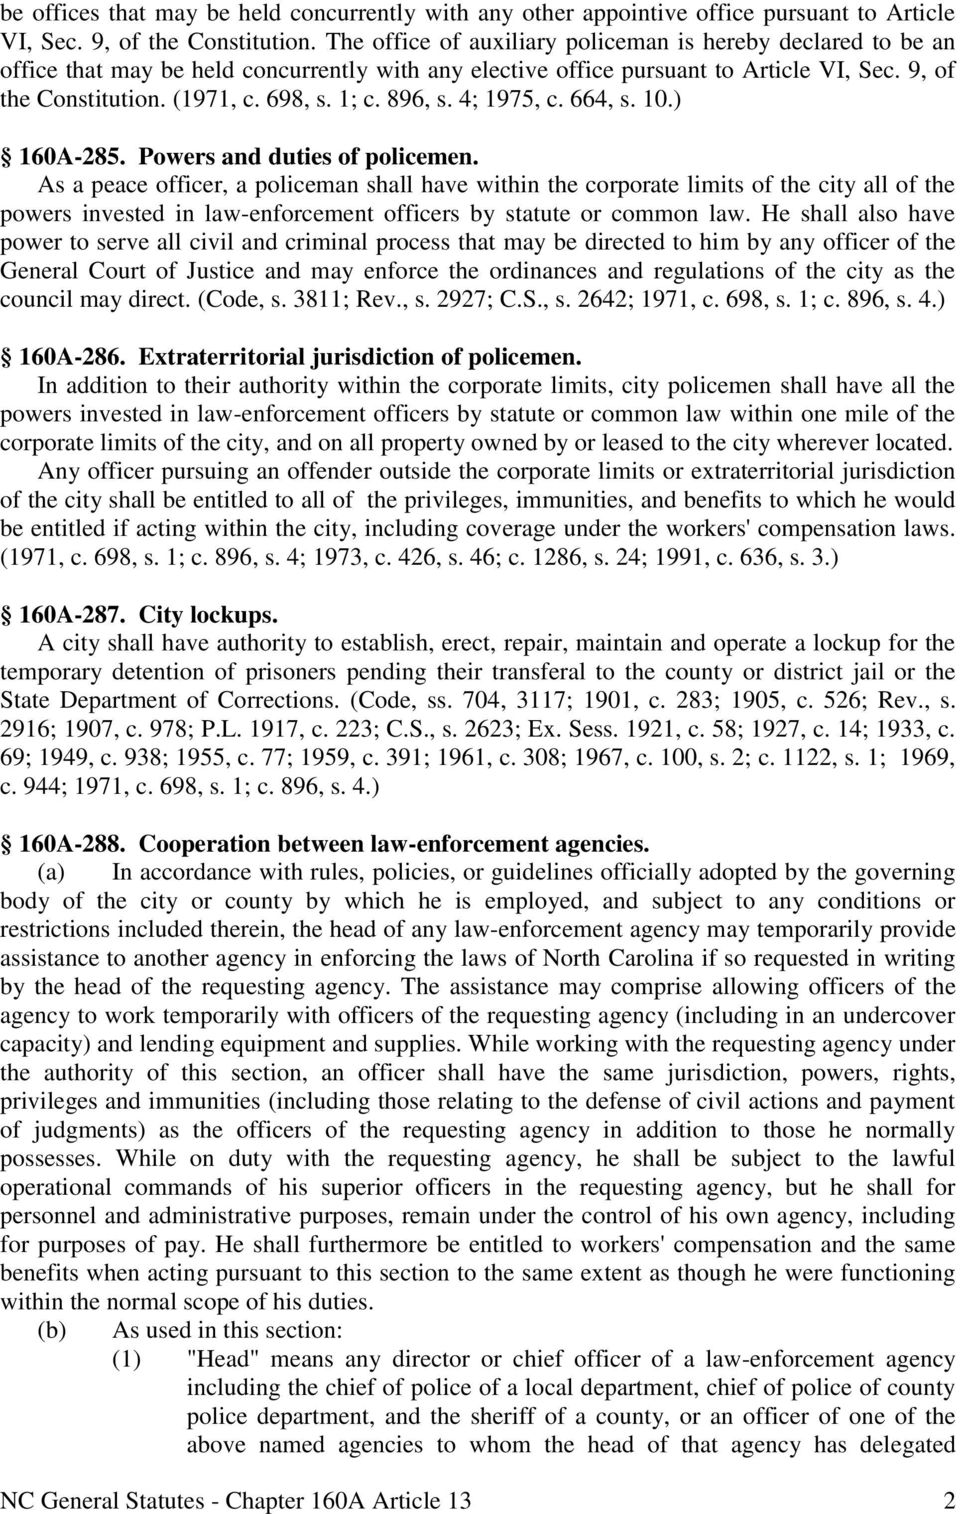 896, s. 4; 1975, c. 664, s. 10.) 160A-285. Powers and duties of policemen.